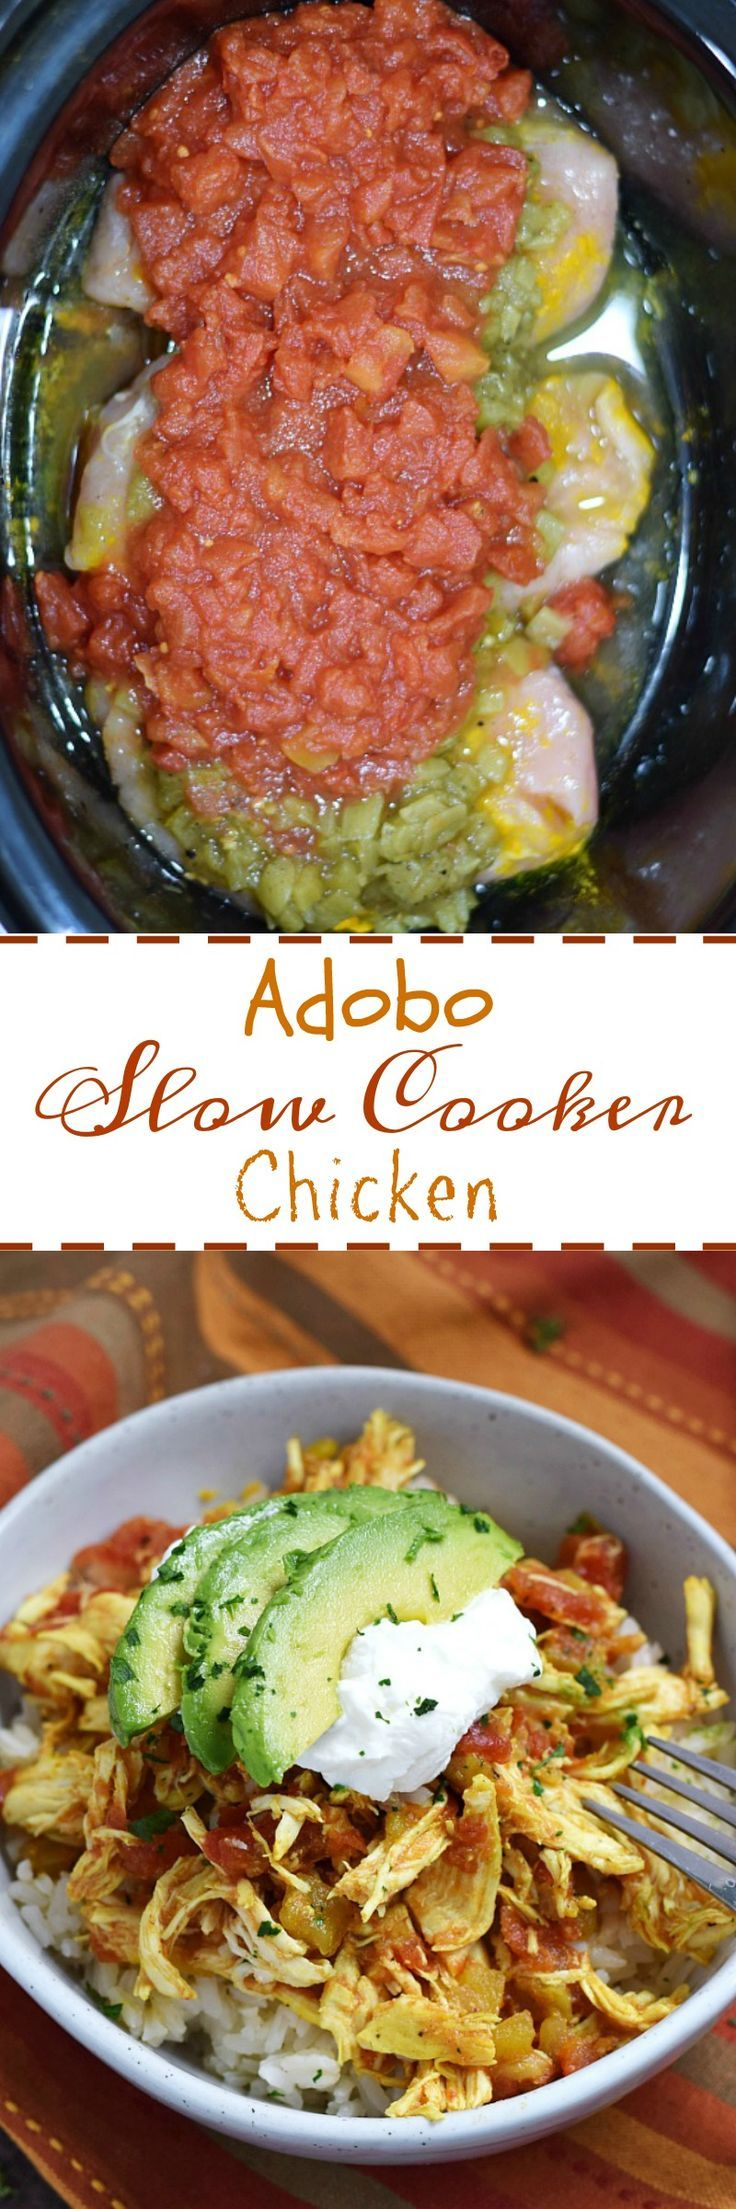 Adobo Slow Cooker Chicken is so simple to prepare and loaded with flavor for the perfect weeknight meal! | cookingwithcurls.com